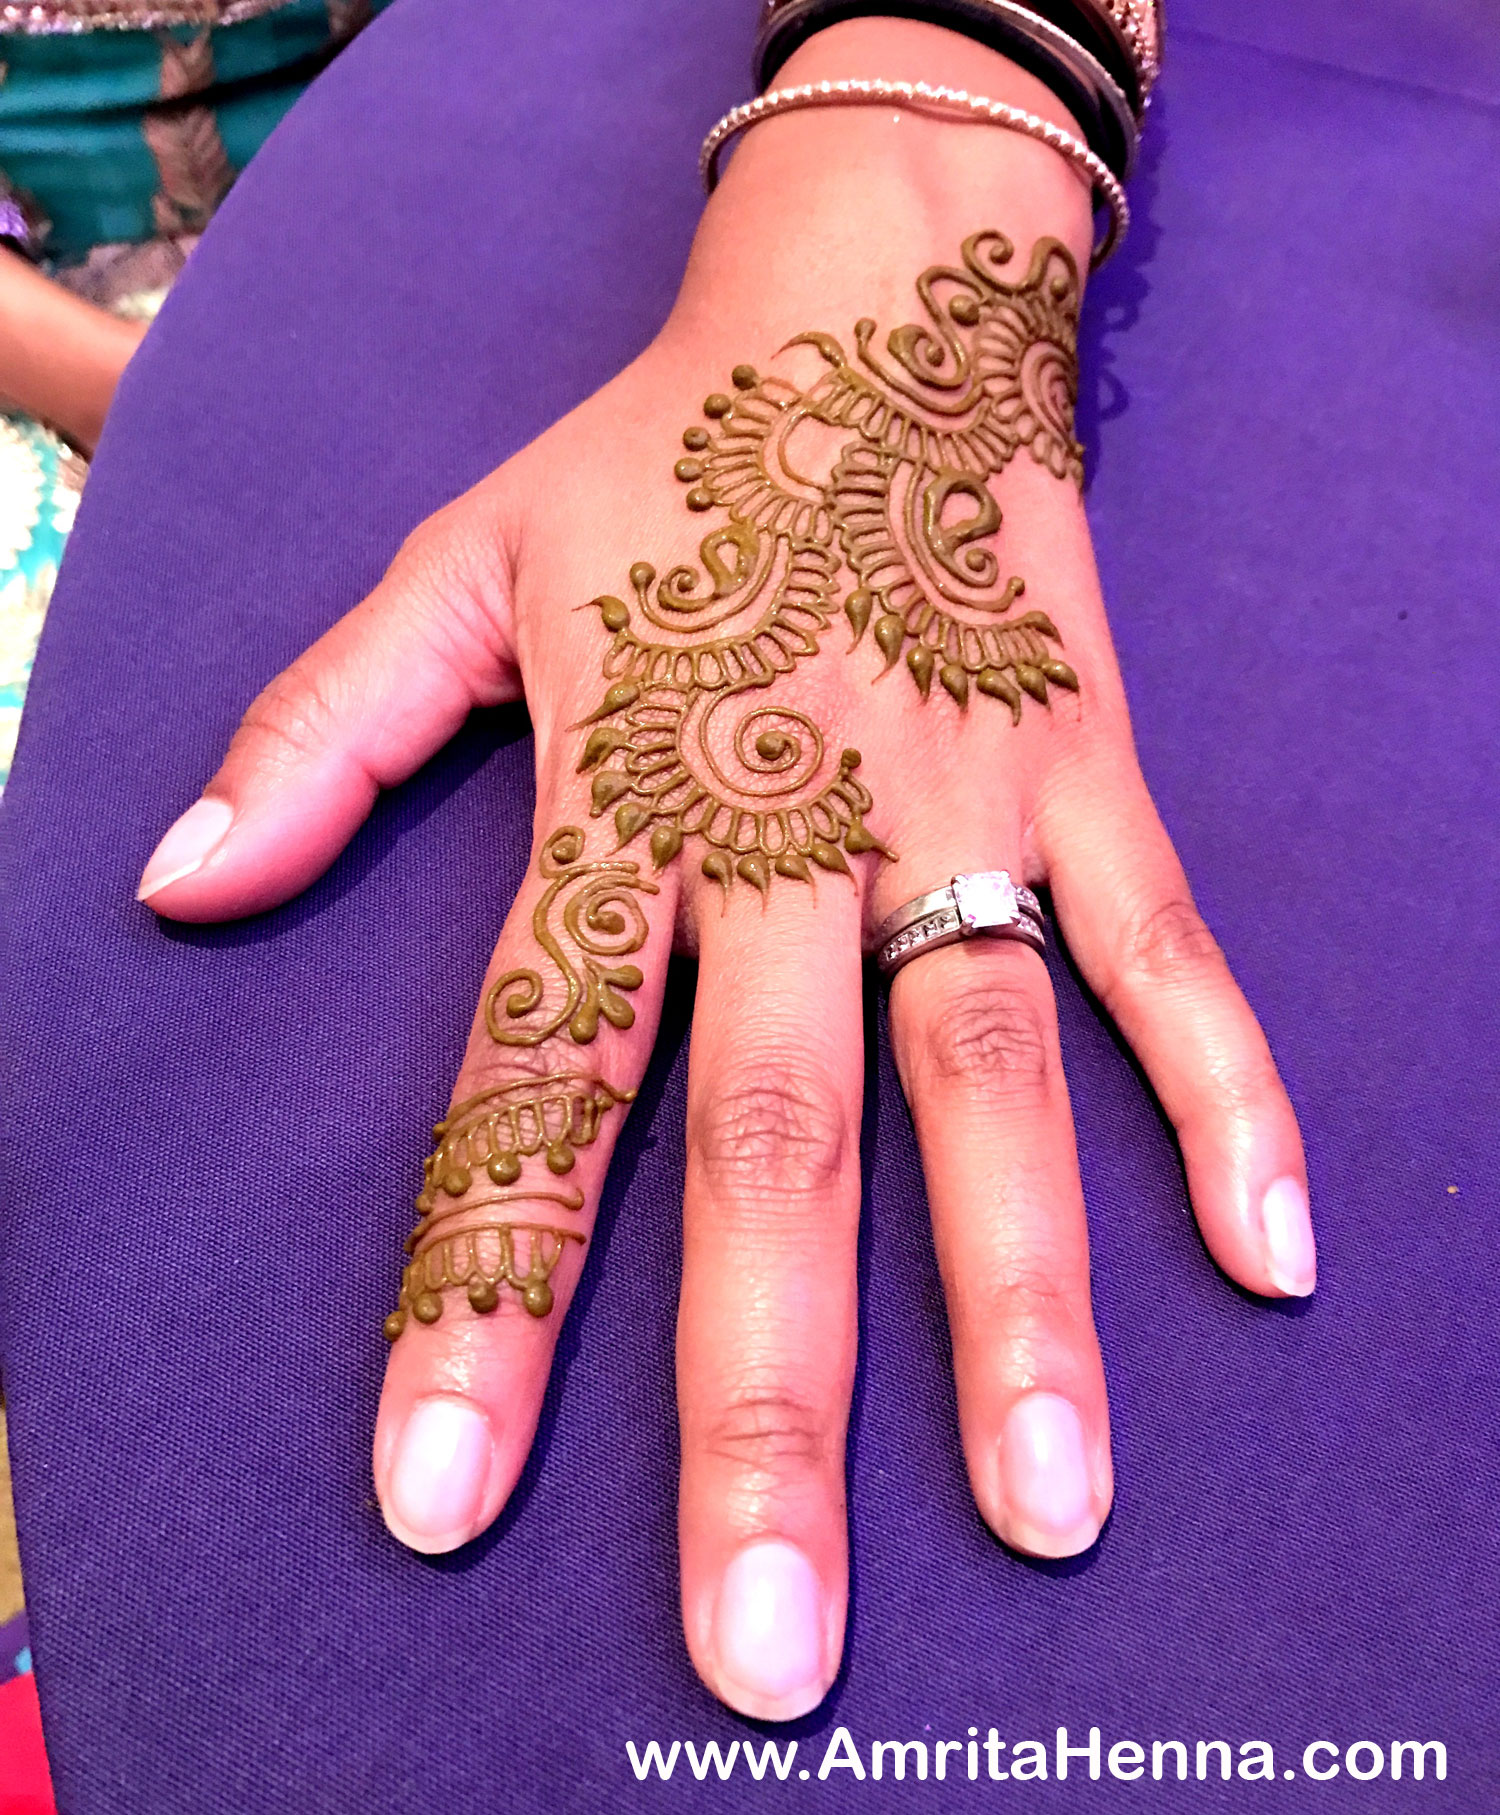 Mehndi Designs For Party : Top henna designs for a party tattoo